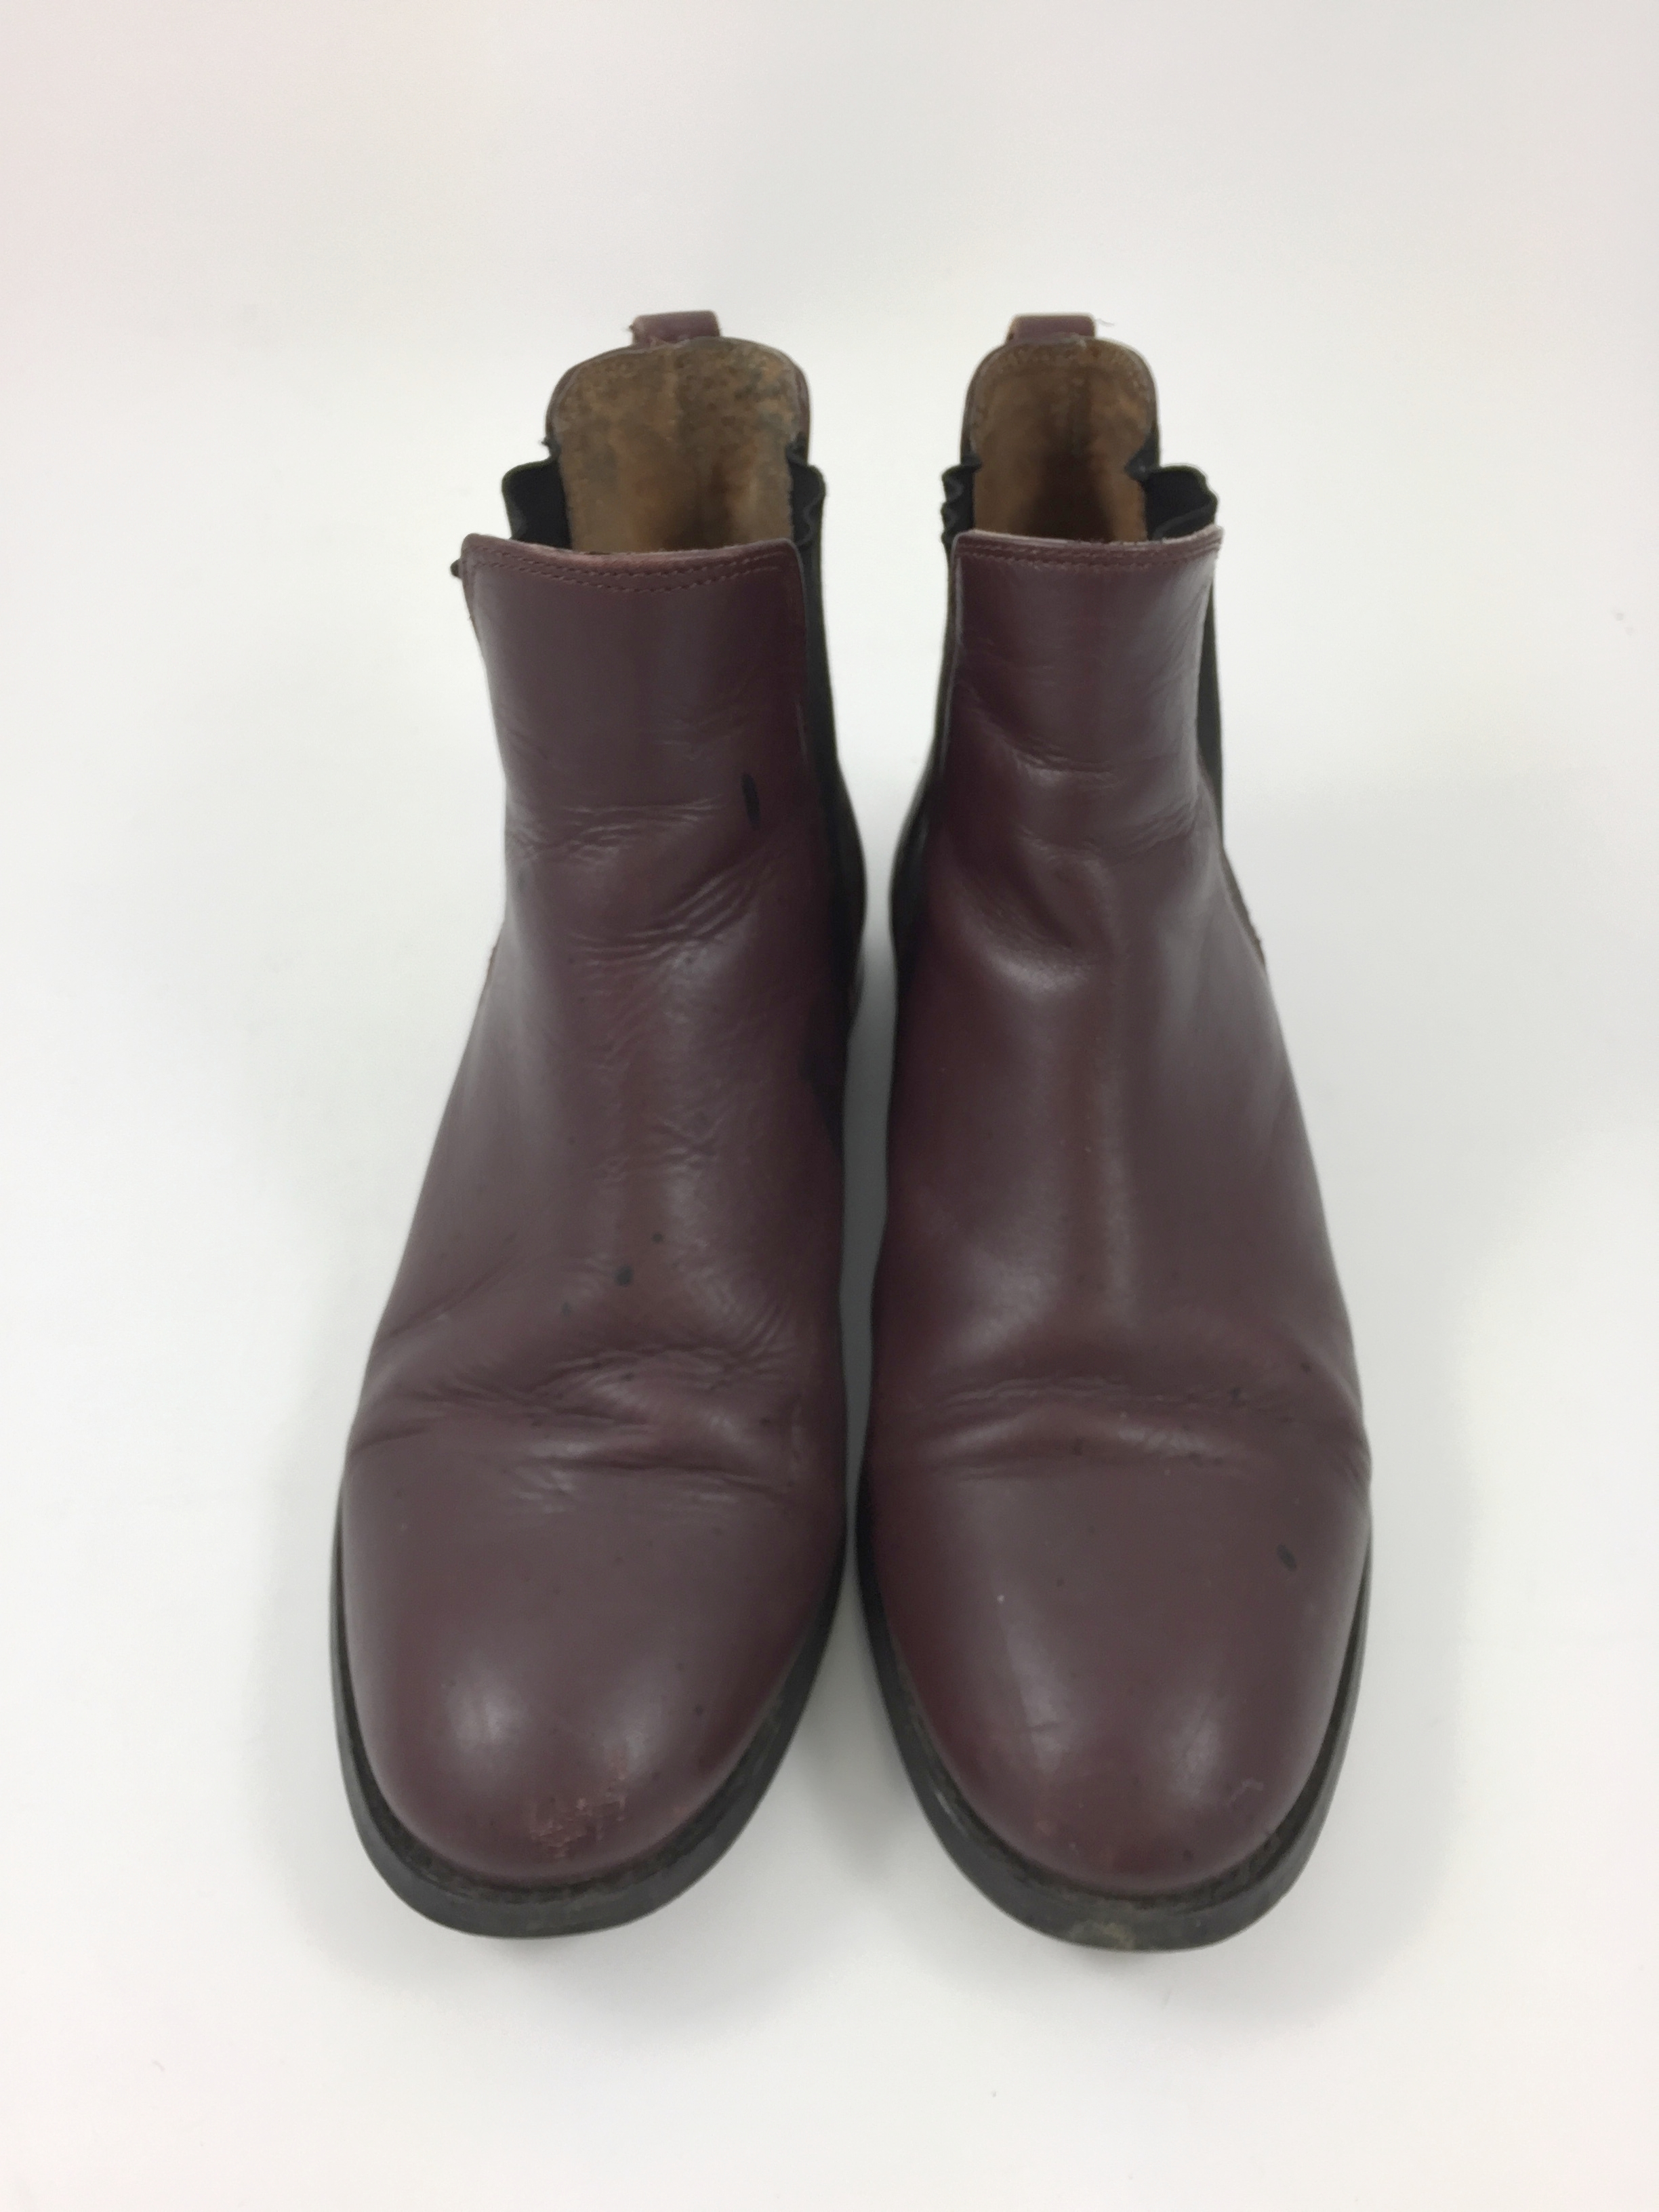 re-style boots